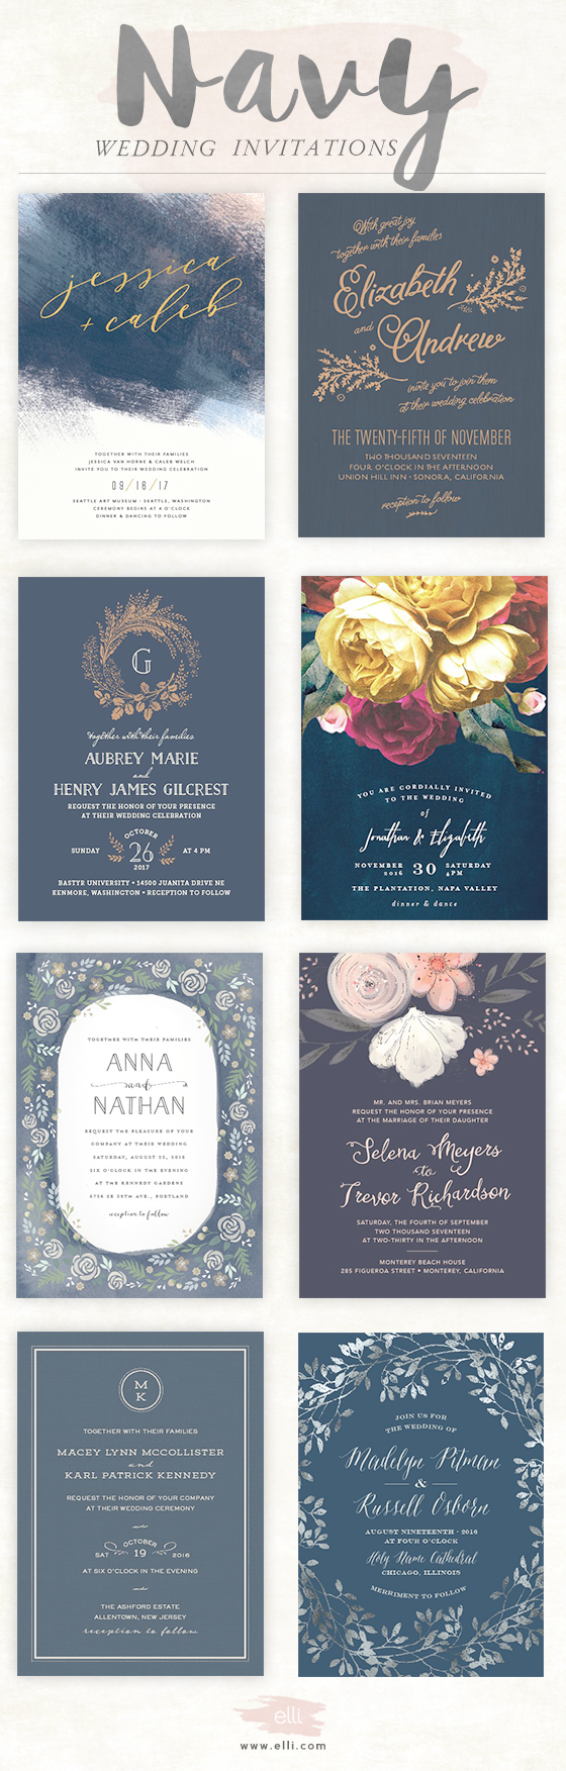 Diy wedding invitations singapore wedding invitations maker